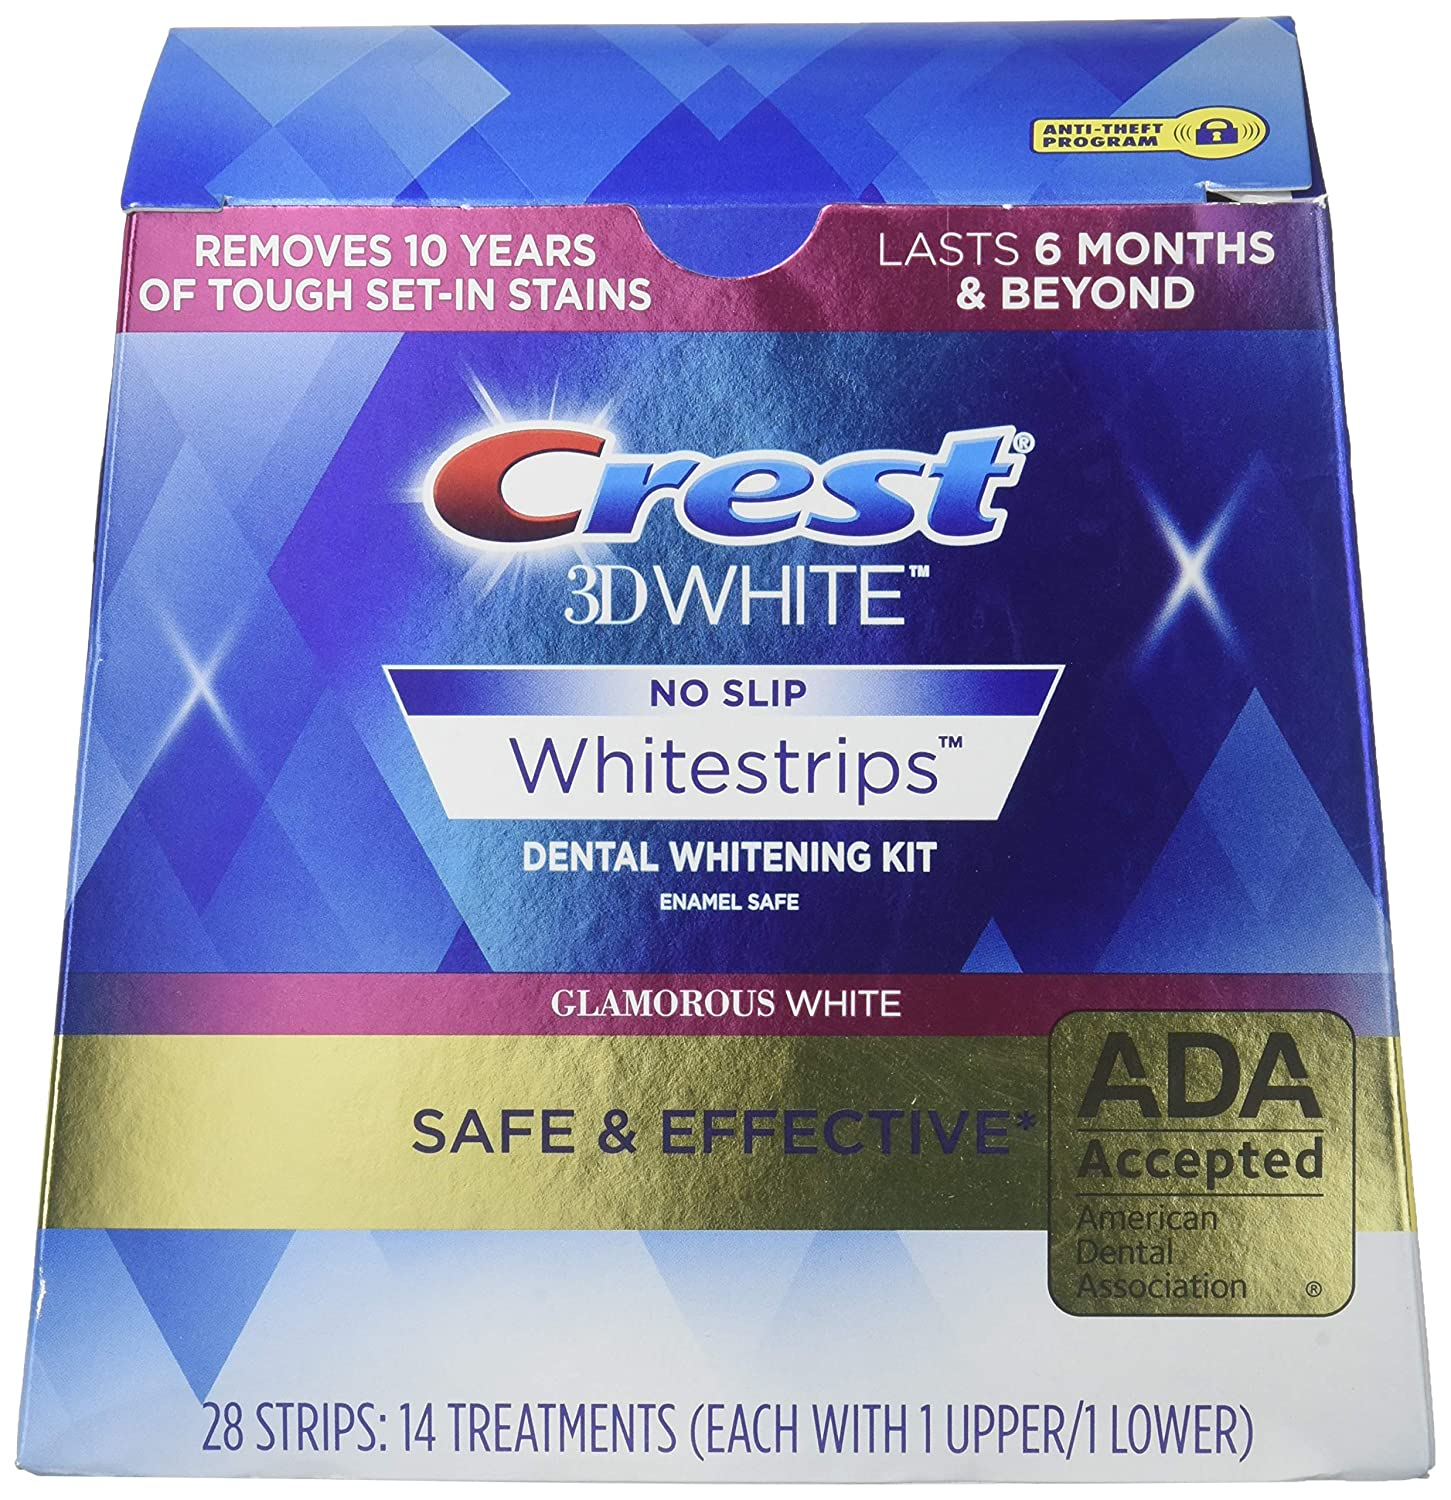 Crest 3D Whitestrips LUXE Glamorous White 28 Count